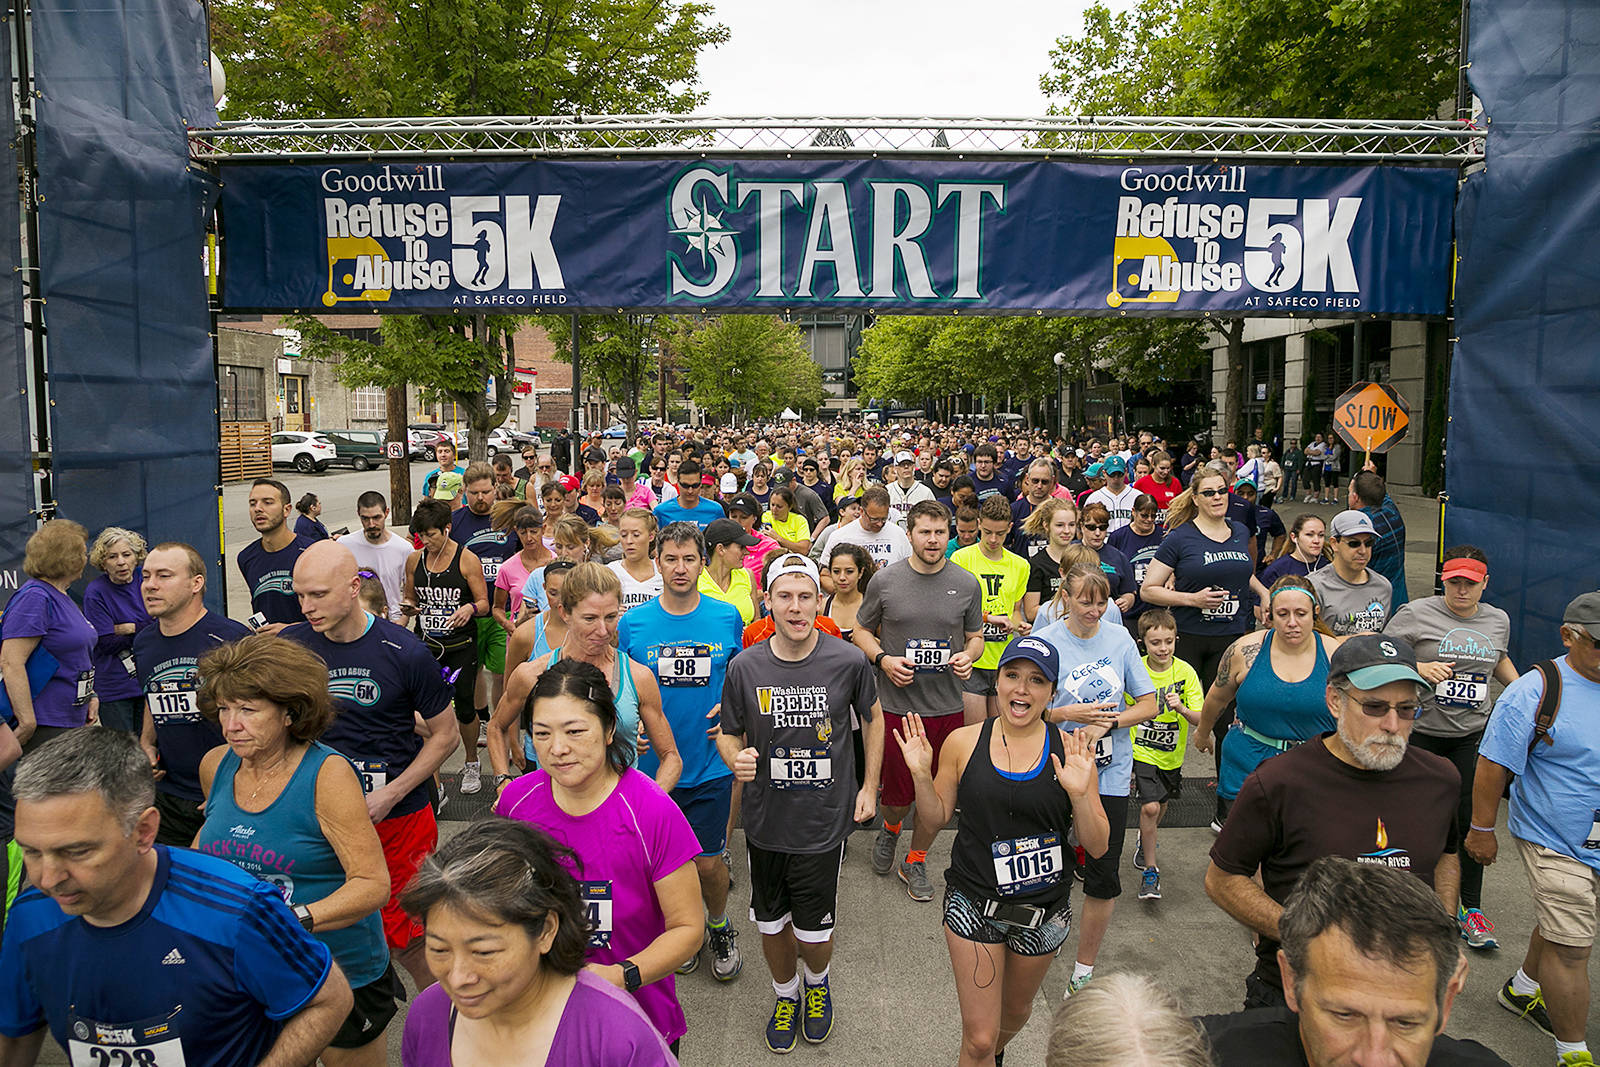 Join the July 21 Refuse To Abuse 5k, a joint event from the Seattle Mariners and the Washington State Coalition Against Domestic Violence.